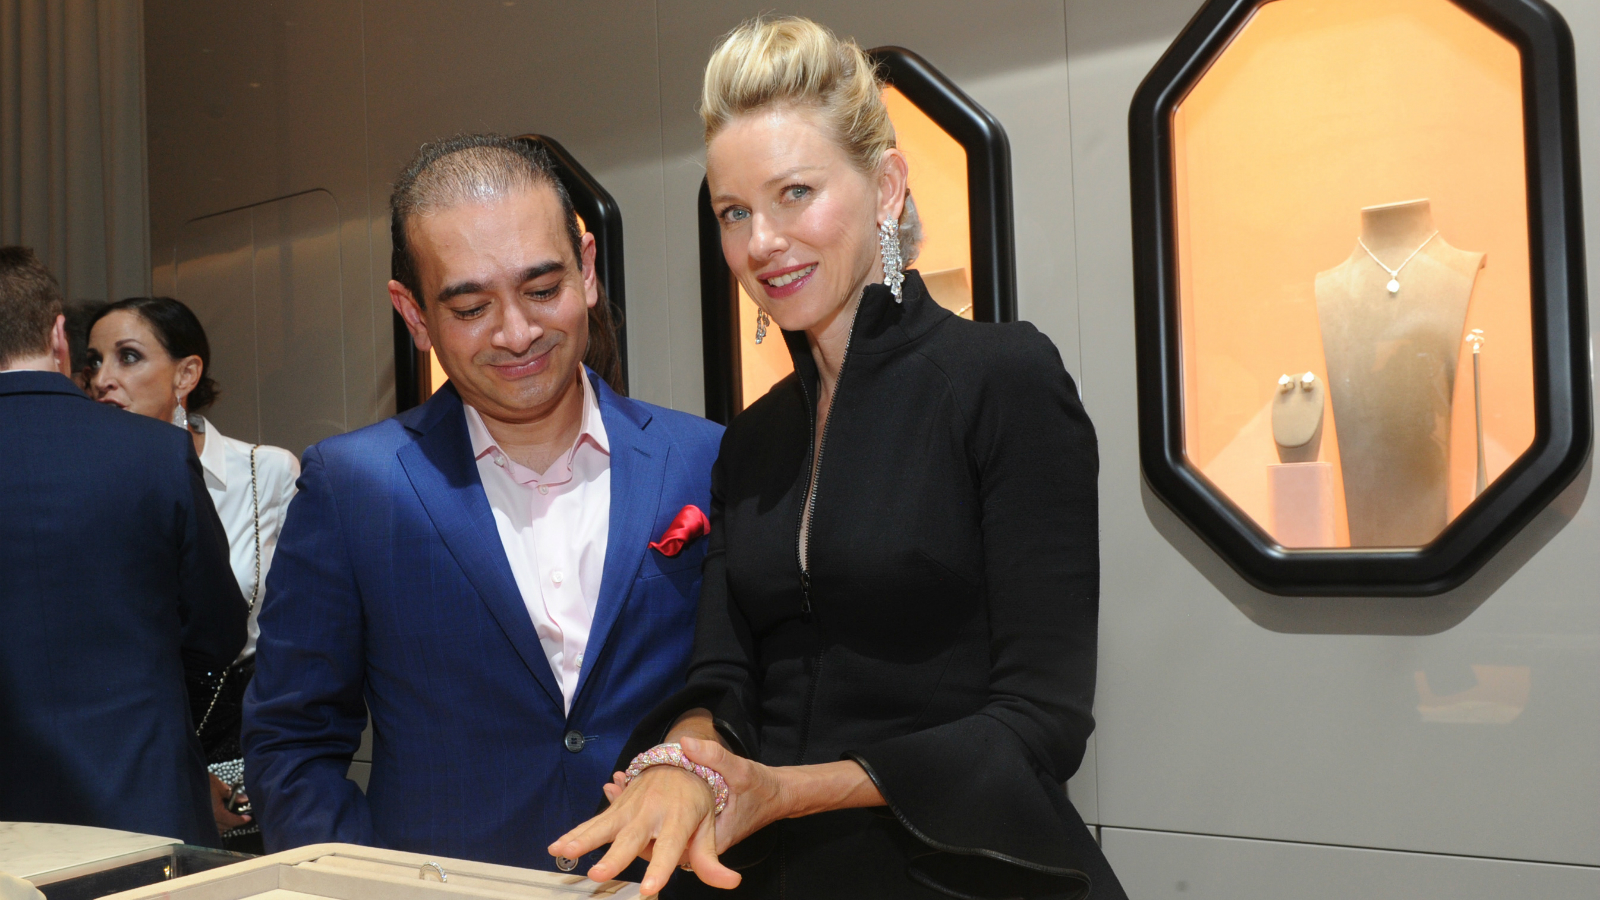 Actress Naomi Watts and luxury jeweler Nirav Modi, left, celebrate the launch of the first Nirav Modi boutique in the U.S. on Tuesday, Sept. 8, 2015, in New York.